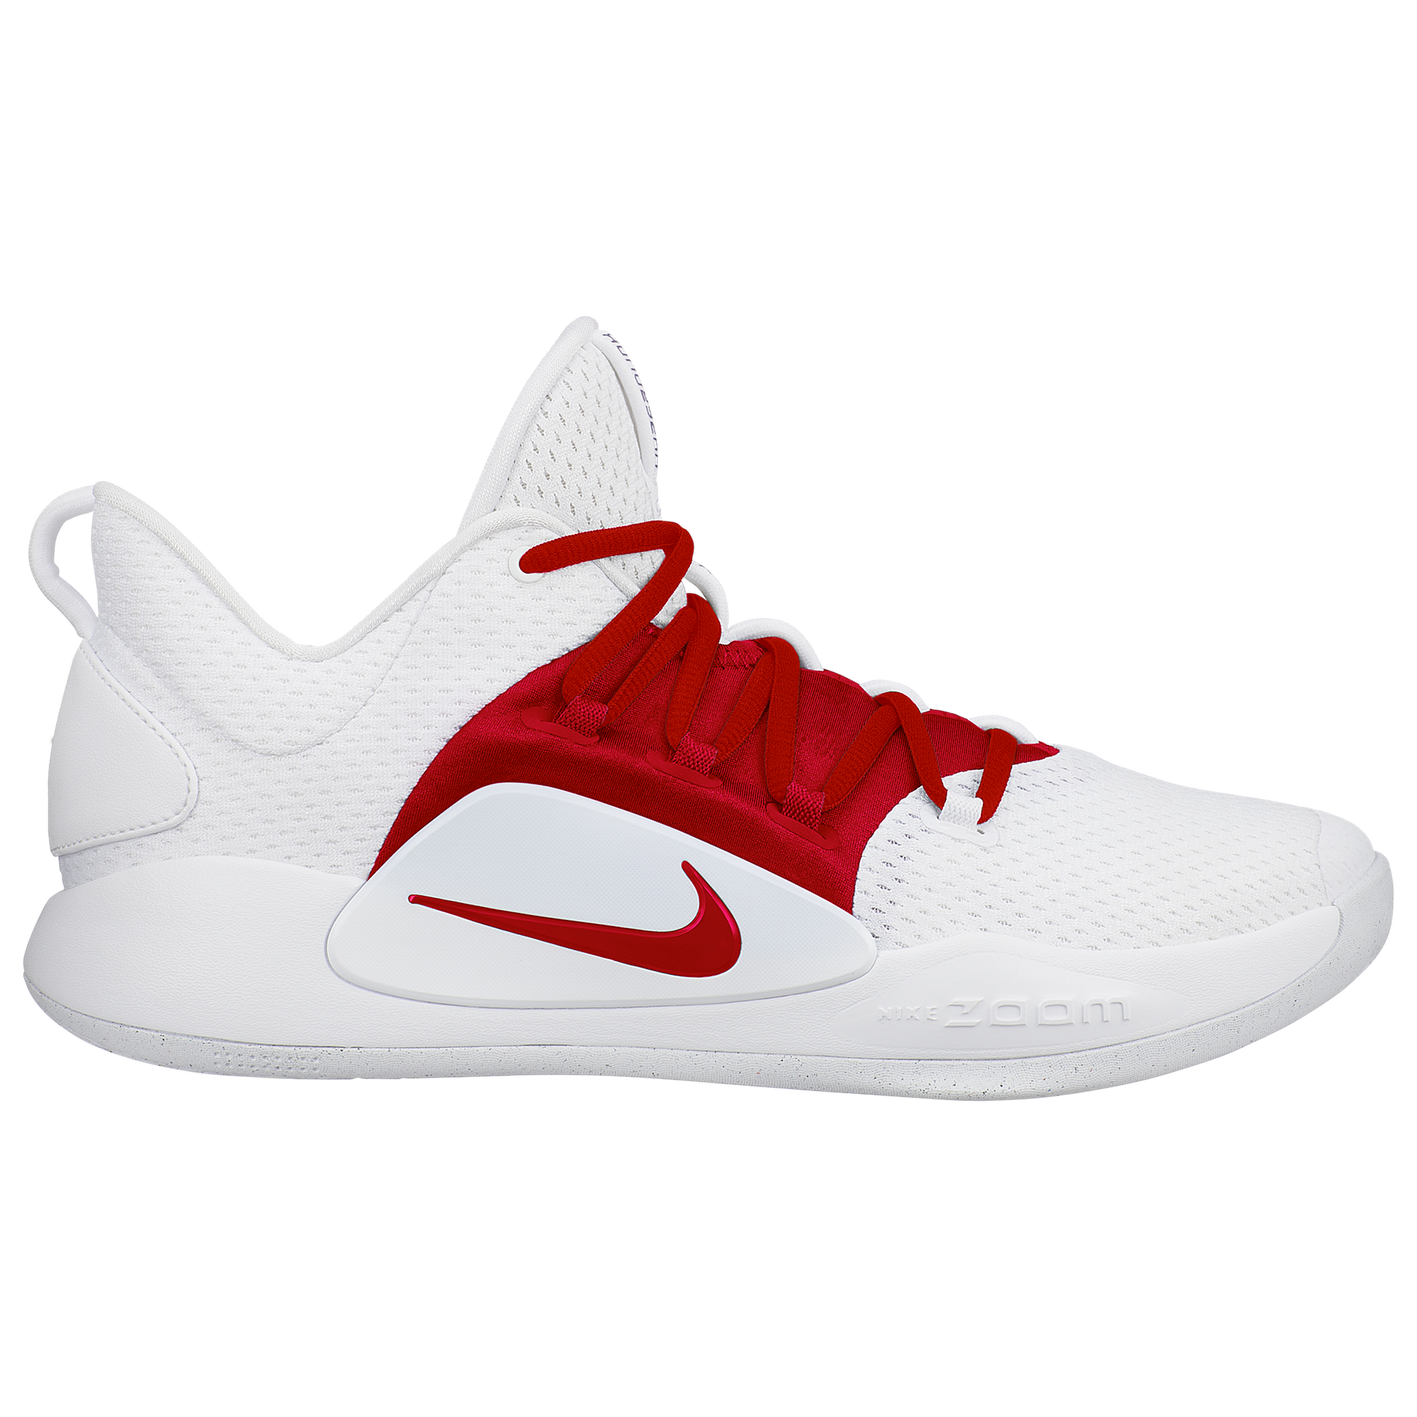 Nike Hyperdunk X Low - Men s - Basketball - Shoes - White University Red f7333f0b7